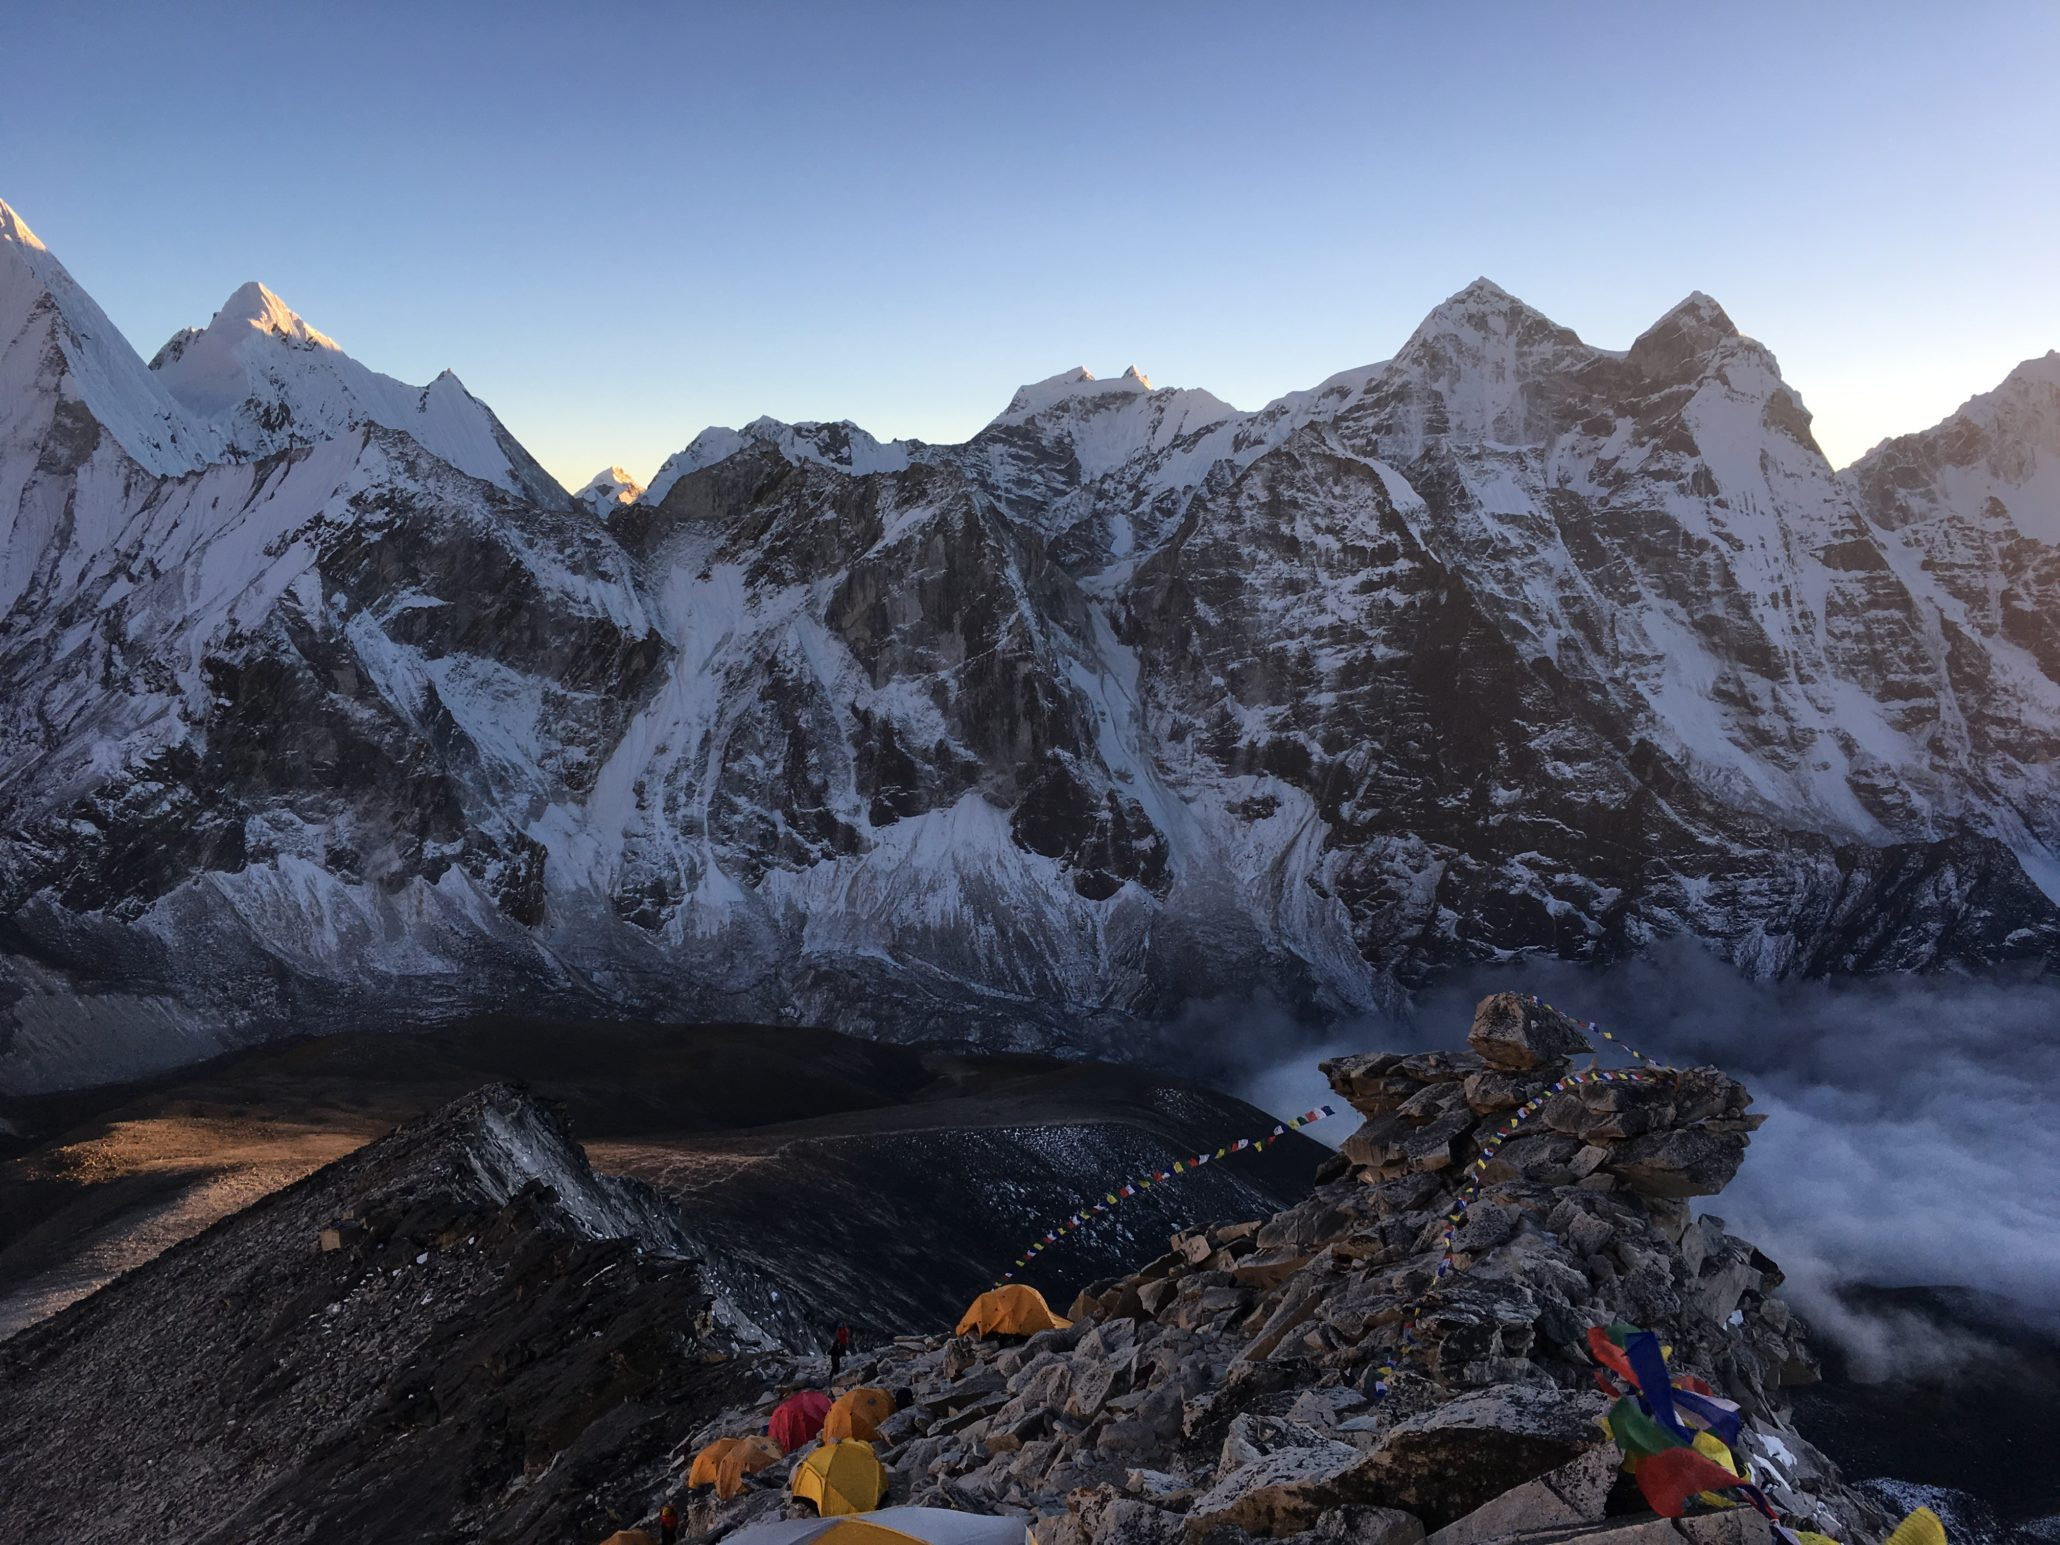 a group himalayan trekkers with their tent settled at the rocky mountain in himalaya